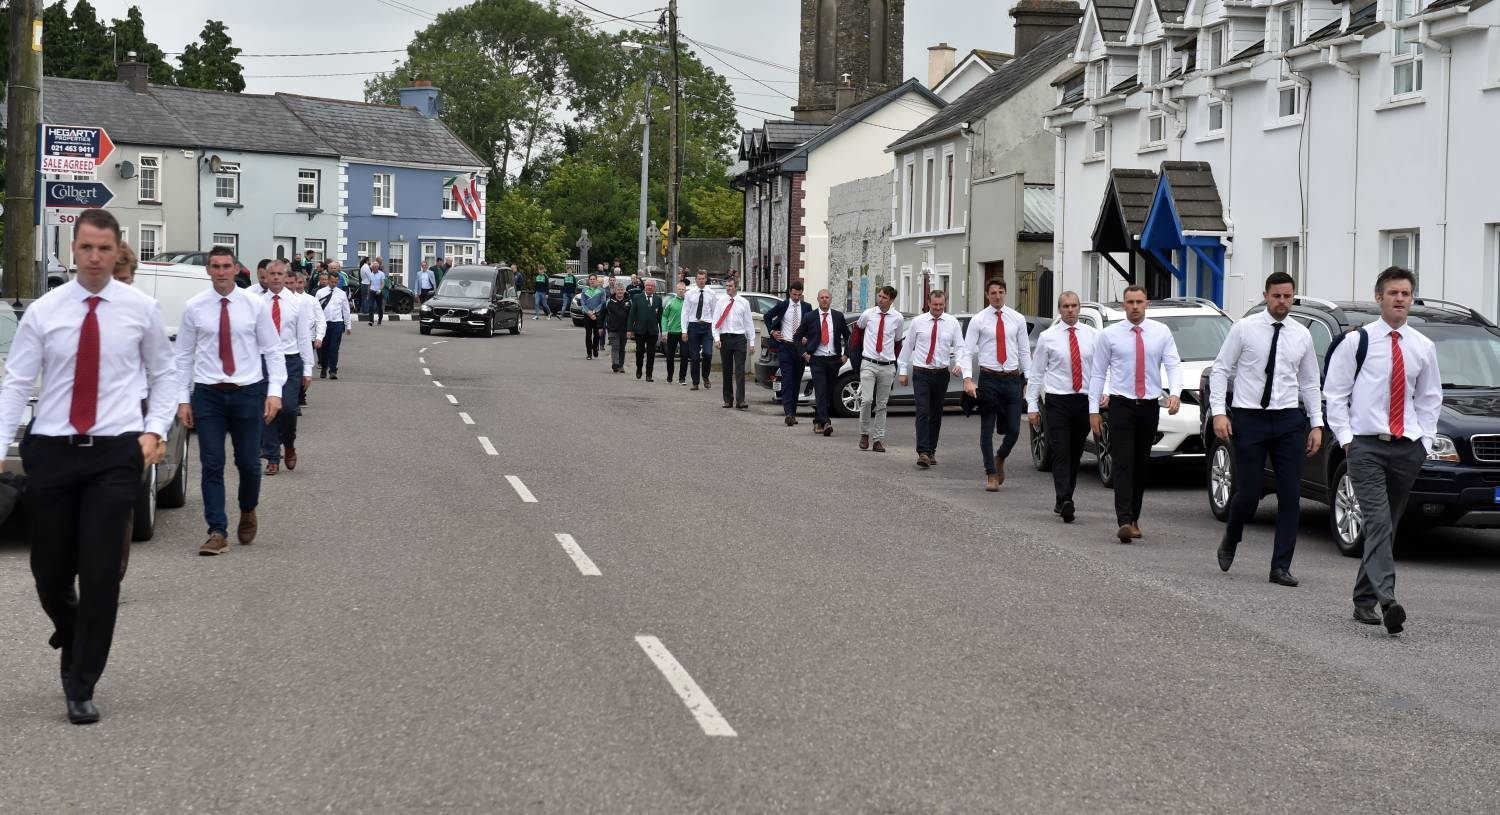 Cork players lead the funeral cortege through Aghada.